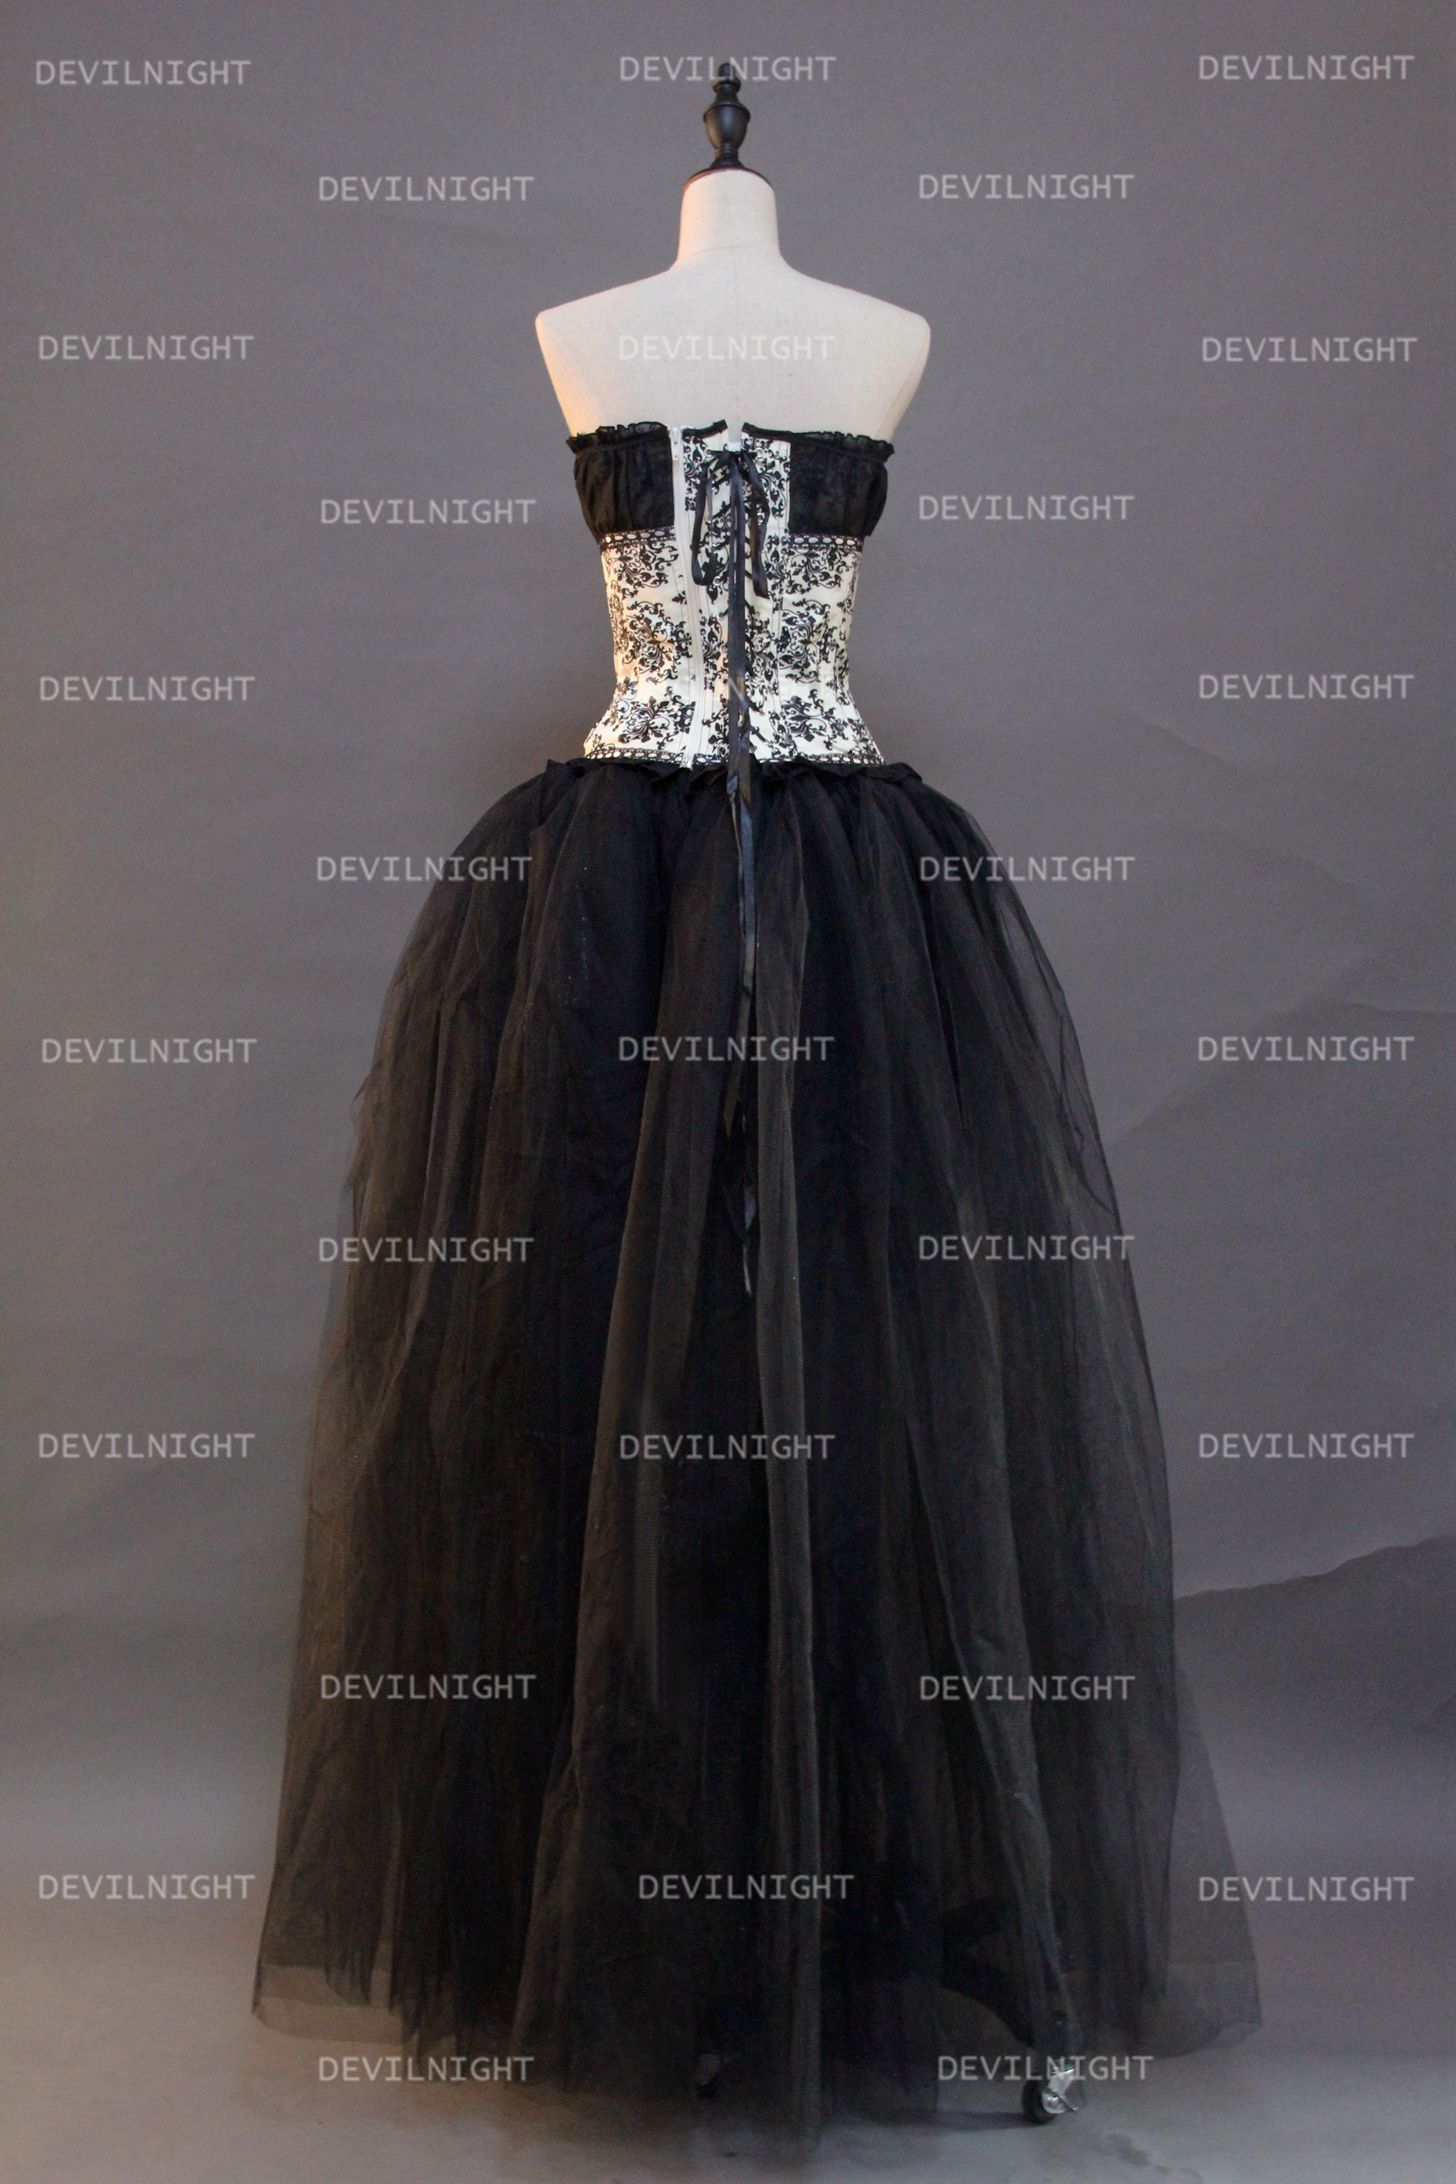 fashion_gothic_corset_high_low_burlesque_prom_party_dress_dresses_3.jpg